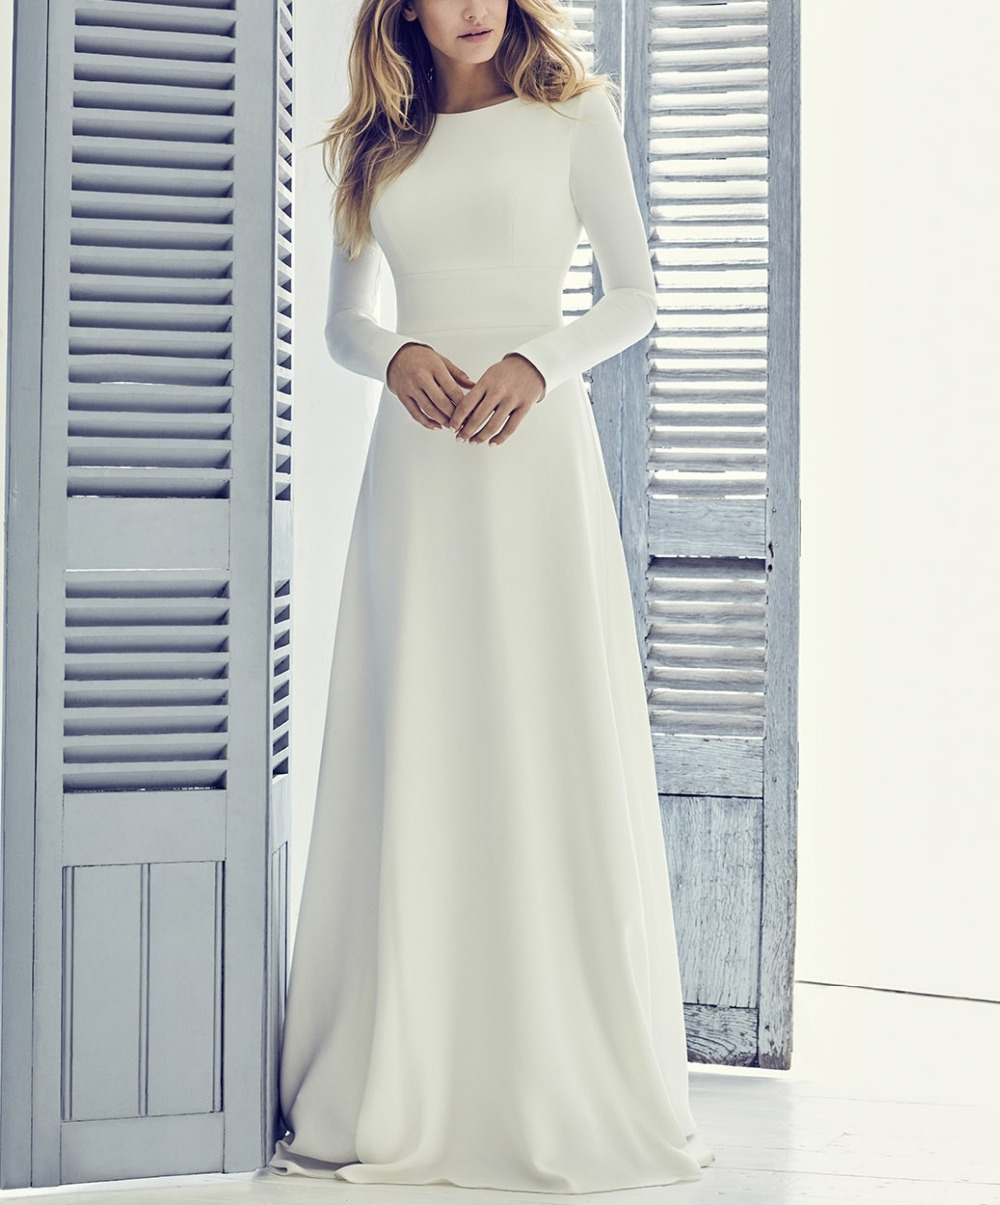 A-line Elegant Crepe Long Modest Wedding Dresses With Long Sleeves Simple Jewel Neck Women Informal Modest Reception Gown